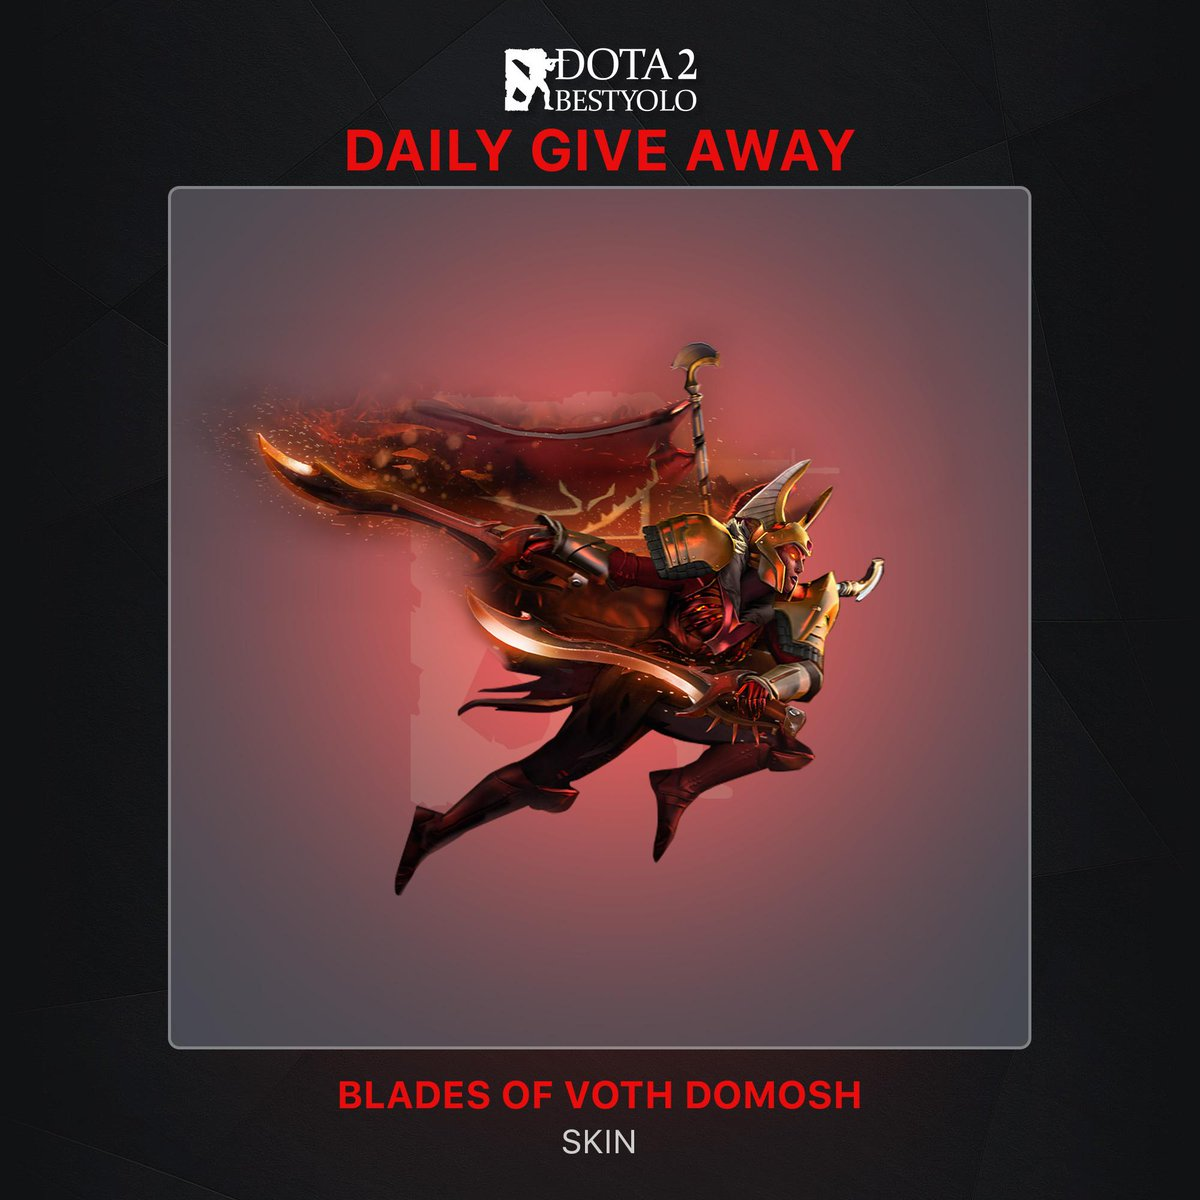 DAILY GIVEAWAY #Day3  Inscribed Blades of Voth Domosh  To enter this giveaway つ ◕_◕ ༽つ:   Follow Dota 2 Best Yolo on Twitter  Like & Retweet This Post  Tag 2 friends.  Winners will be announced after 24 hours.  Good luck to all!!!  #Day2 Winner: @jcjaviandaub<br>http://pic.twitter.com/HZNiCBuN1f